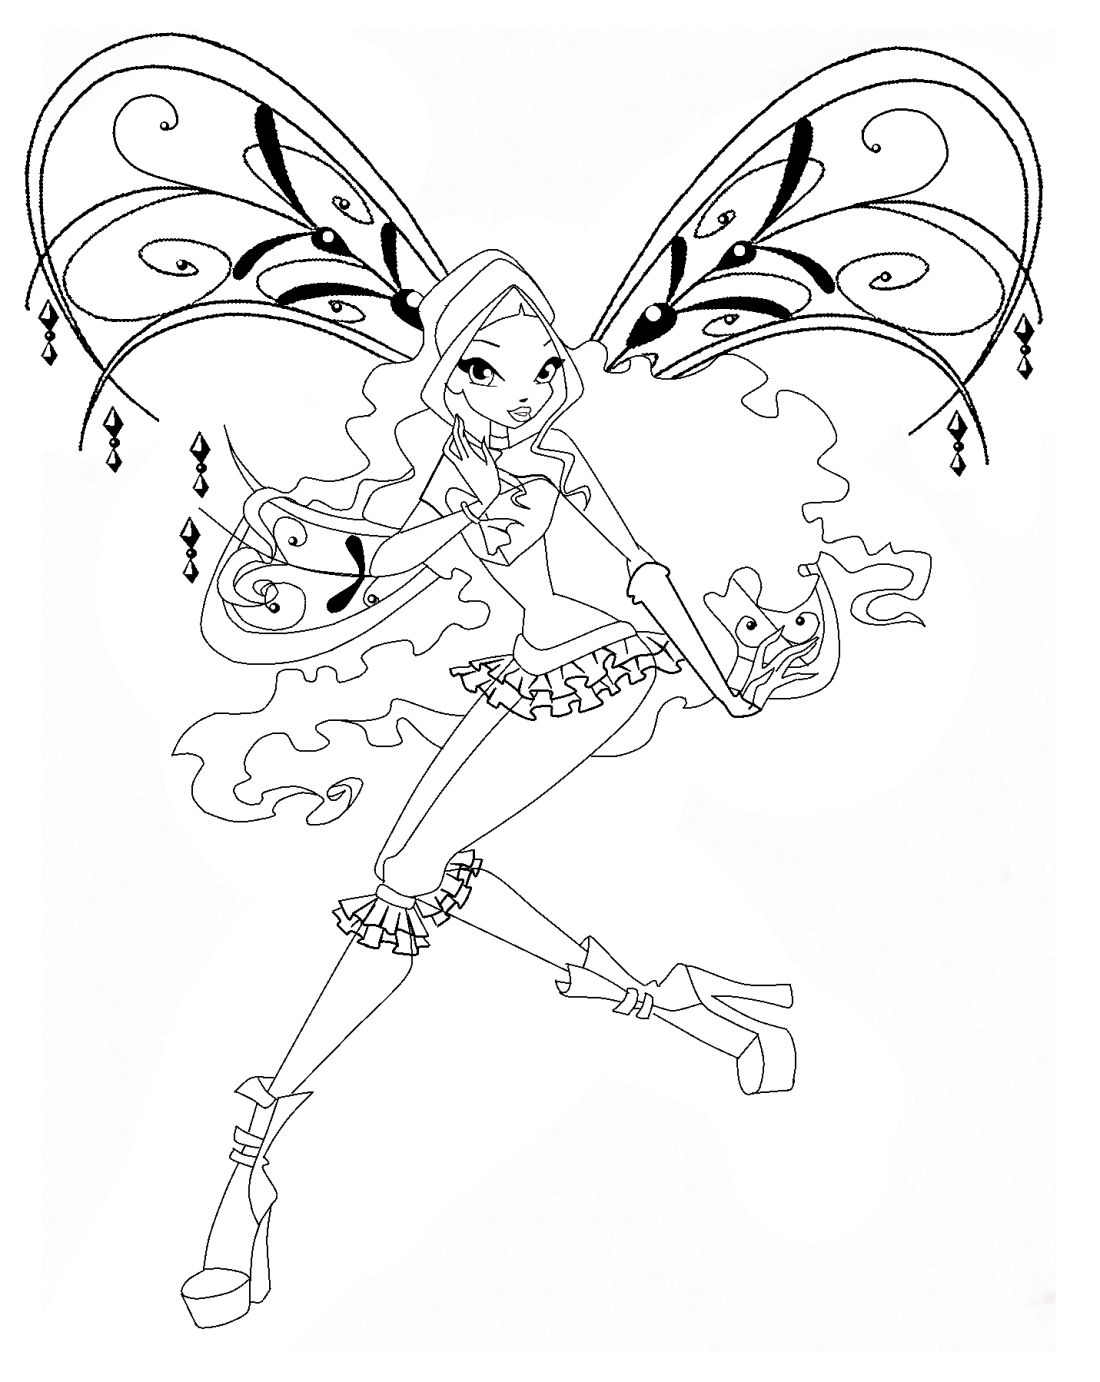 Winx Layla Coloring Pages Love Coloring Pages Coloring Pages Toddler Drawing